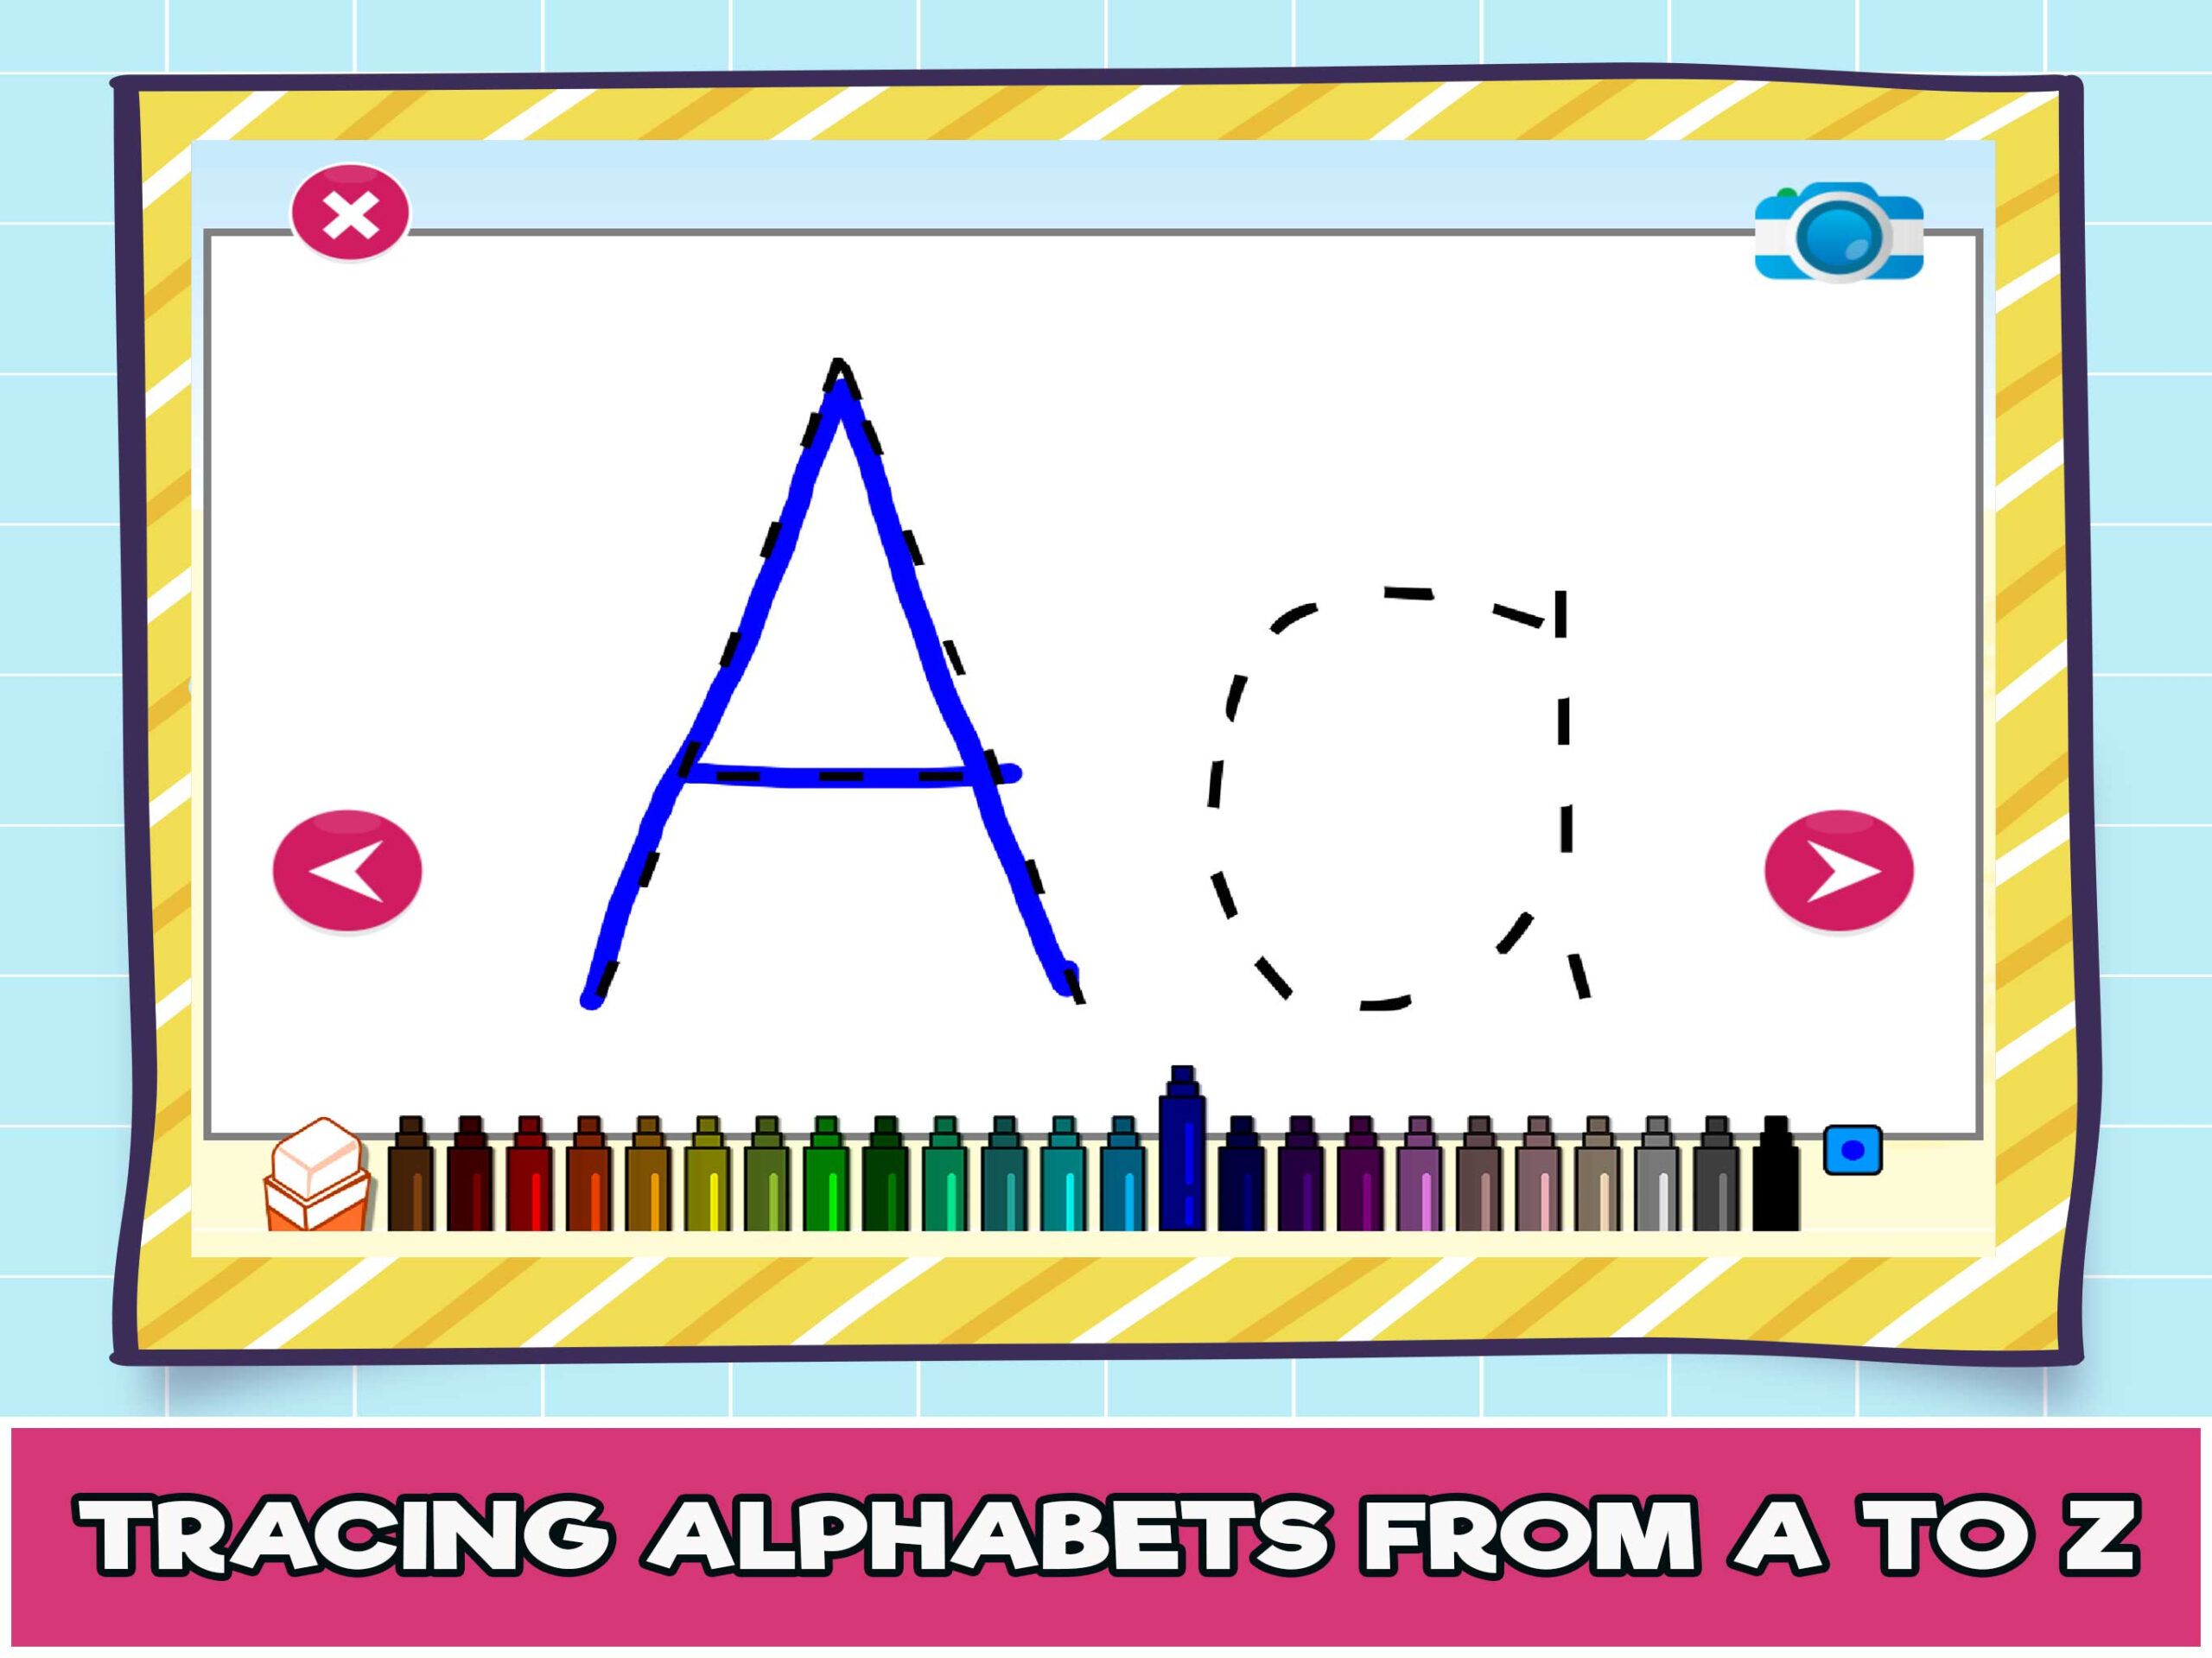 Free Online Alphabet Tracing Game For Kids - The Learning Apps inside Alphabet Tracing Free App